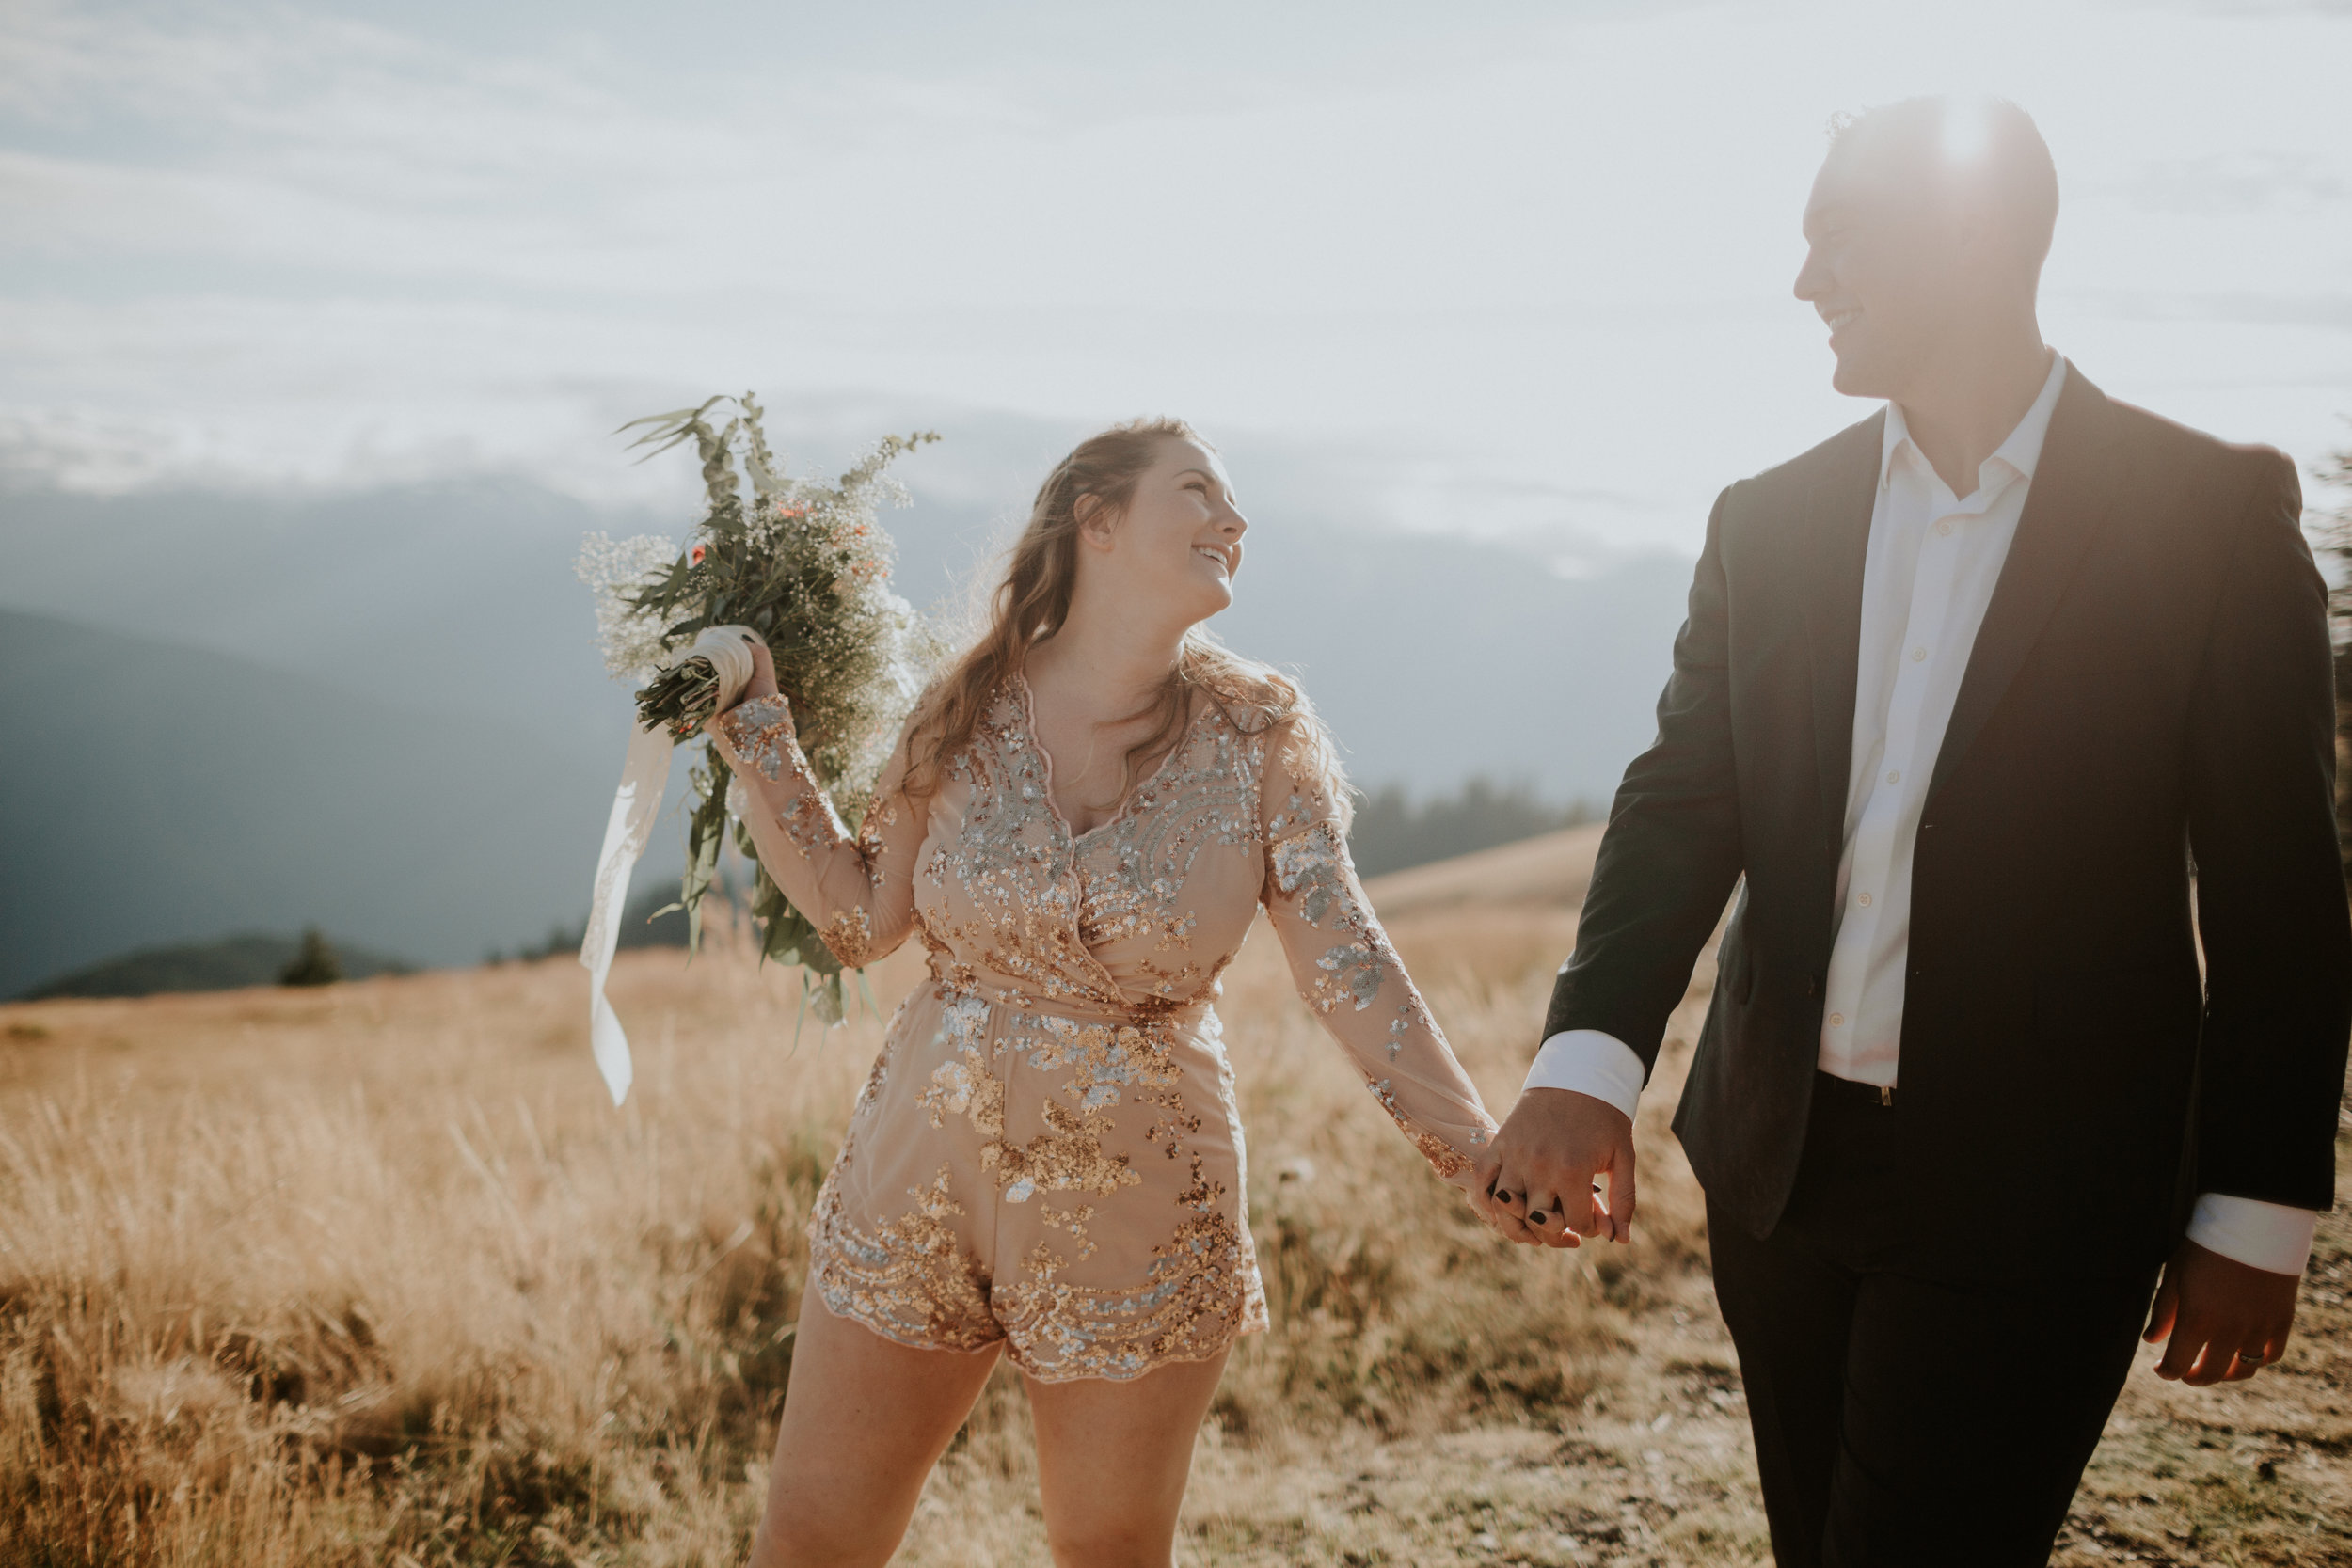 Port Angeles-Portrait-Photographer-PNW-Photography-Anniversary-elopement-kayladawnphoto-kayla dawn photography-Hurricane Ridge-Olympic Peninsula Photographer-7.jpg